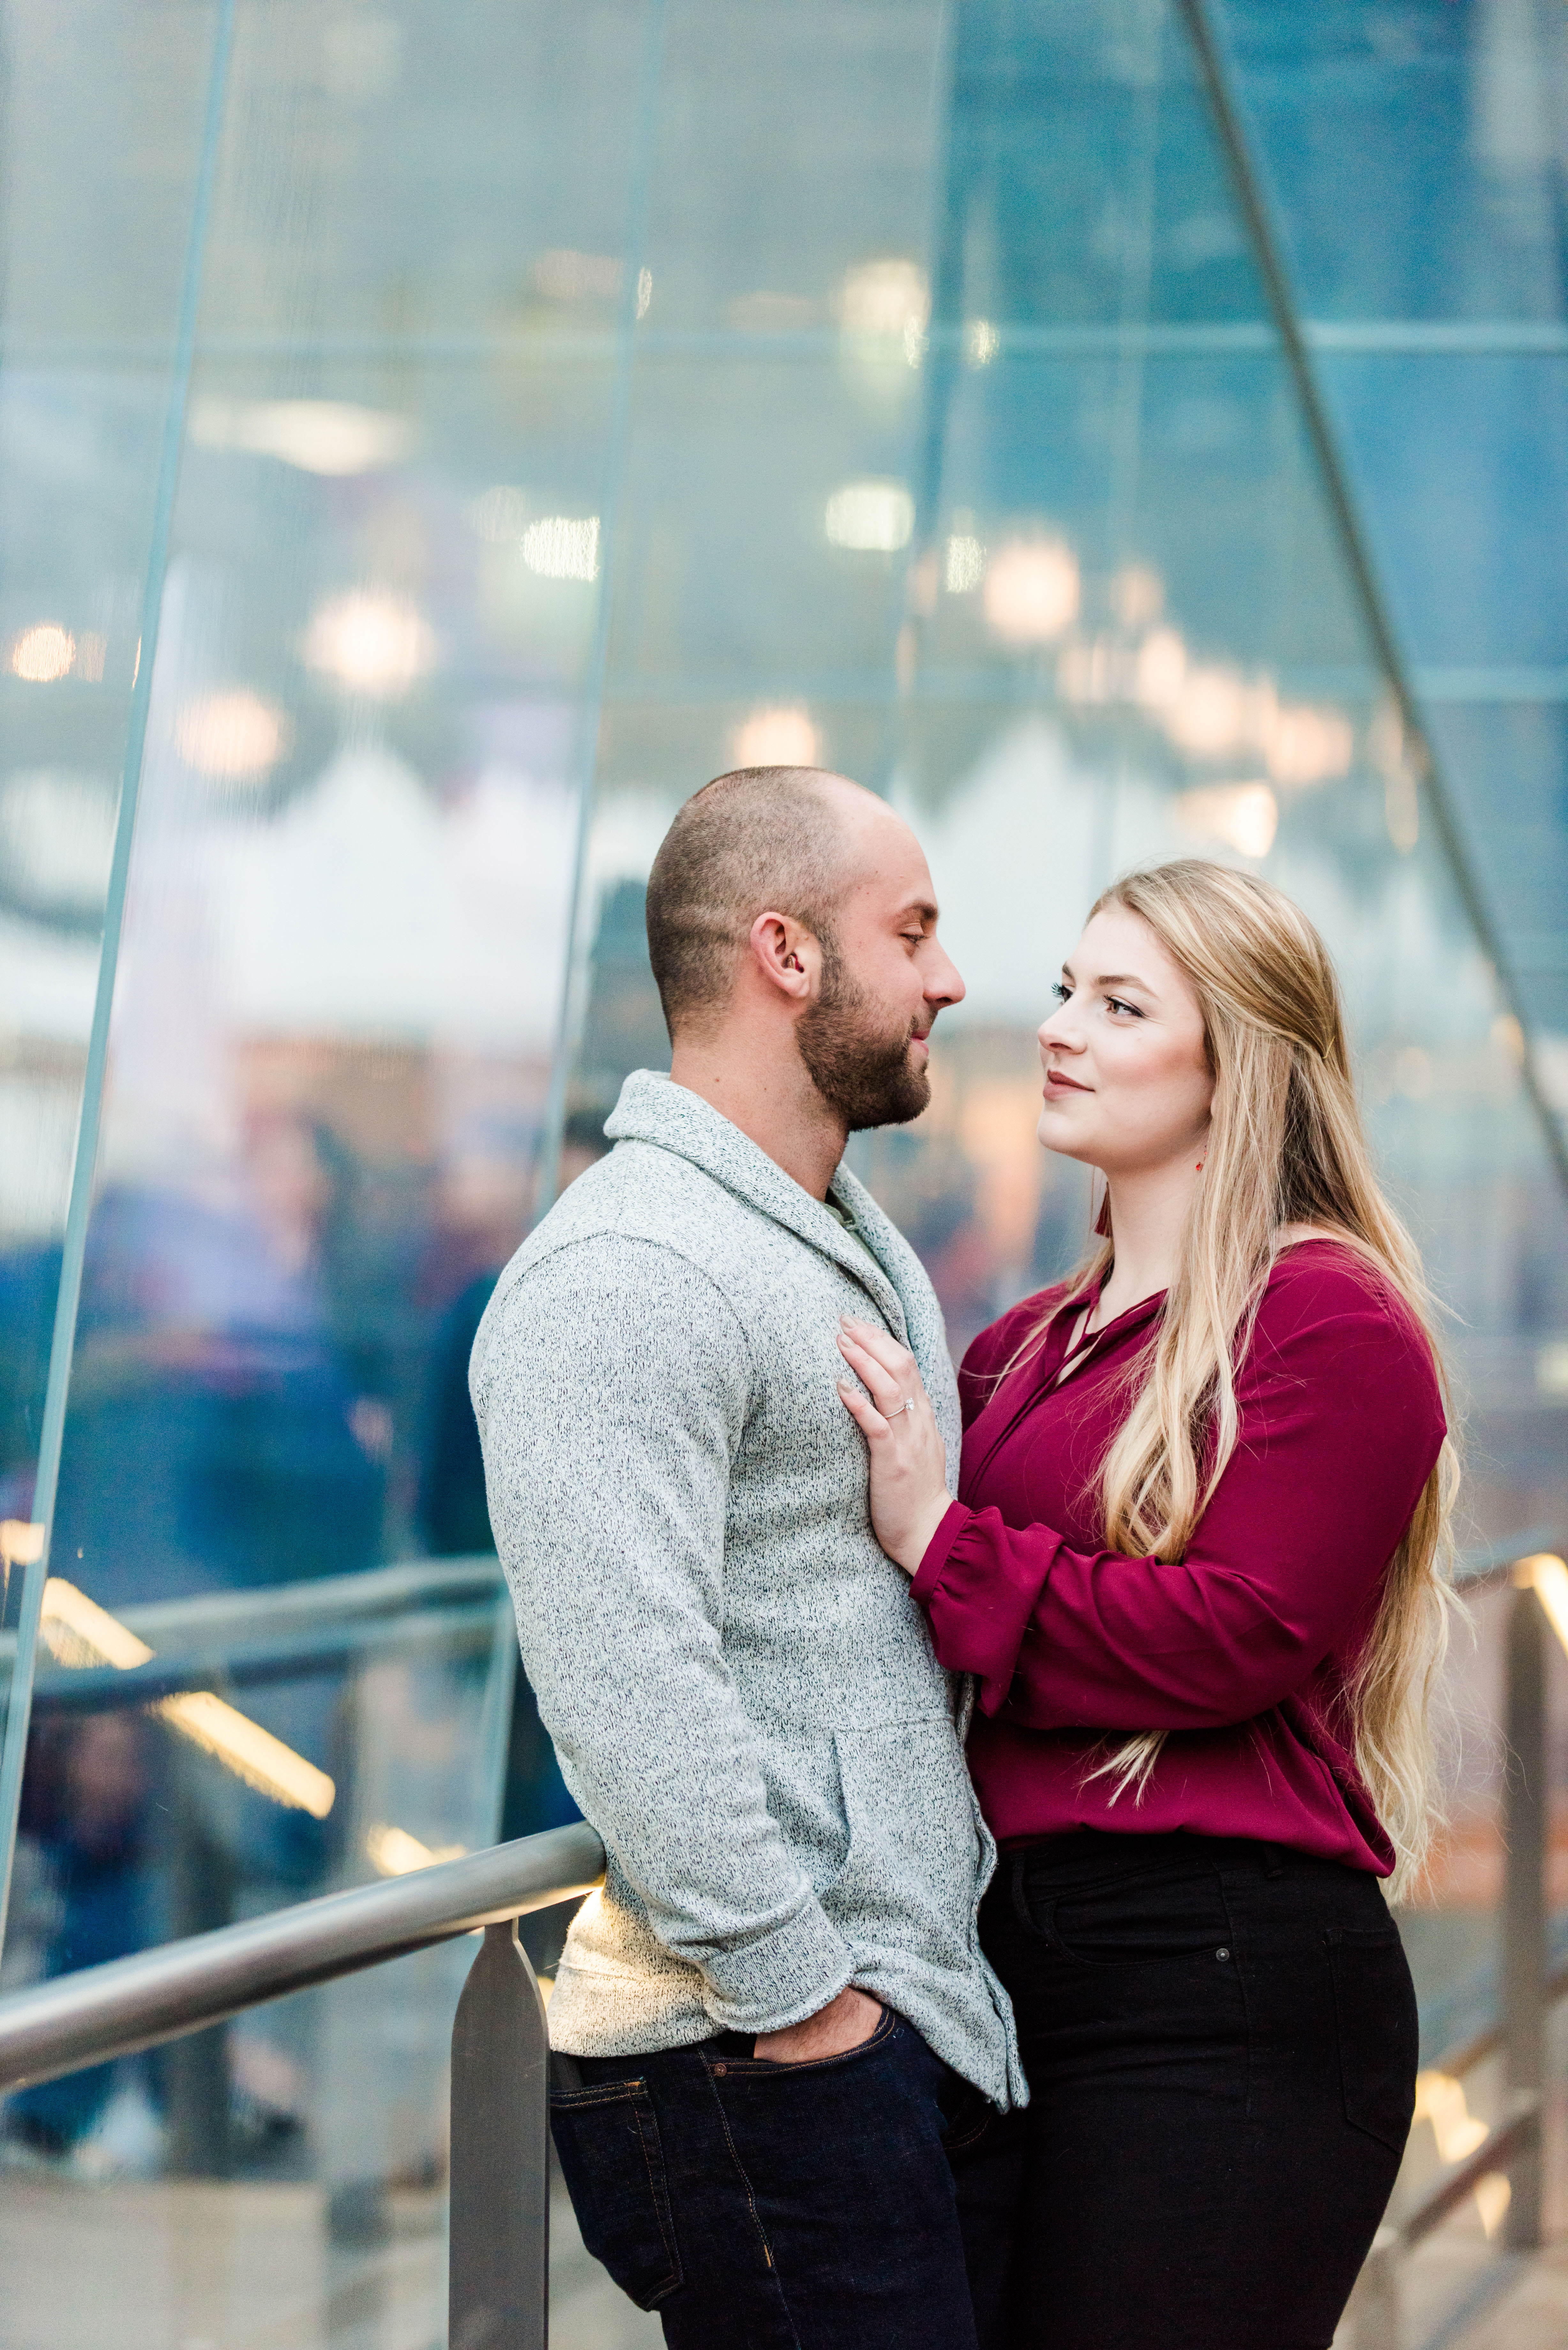 Engagement Photos Philadelphia Pennsylvania City Portraits Andrea Krout Photography-4